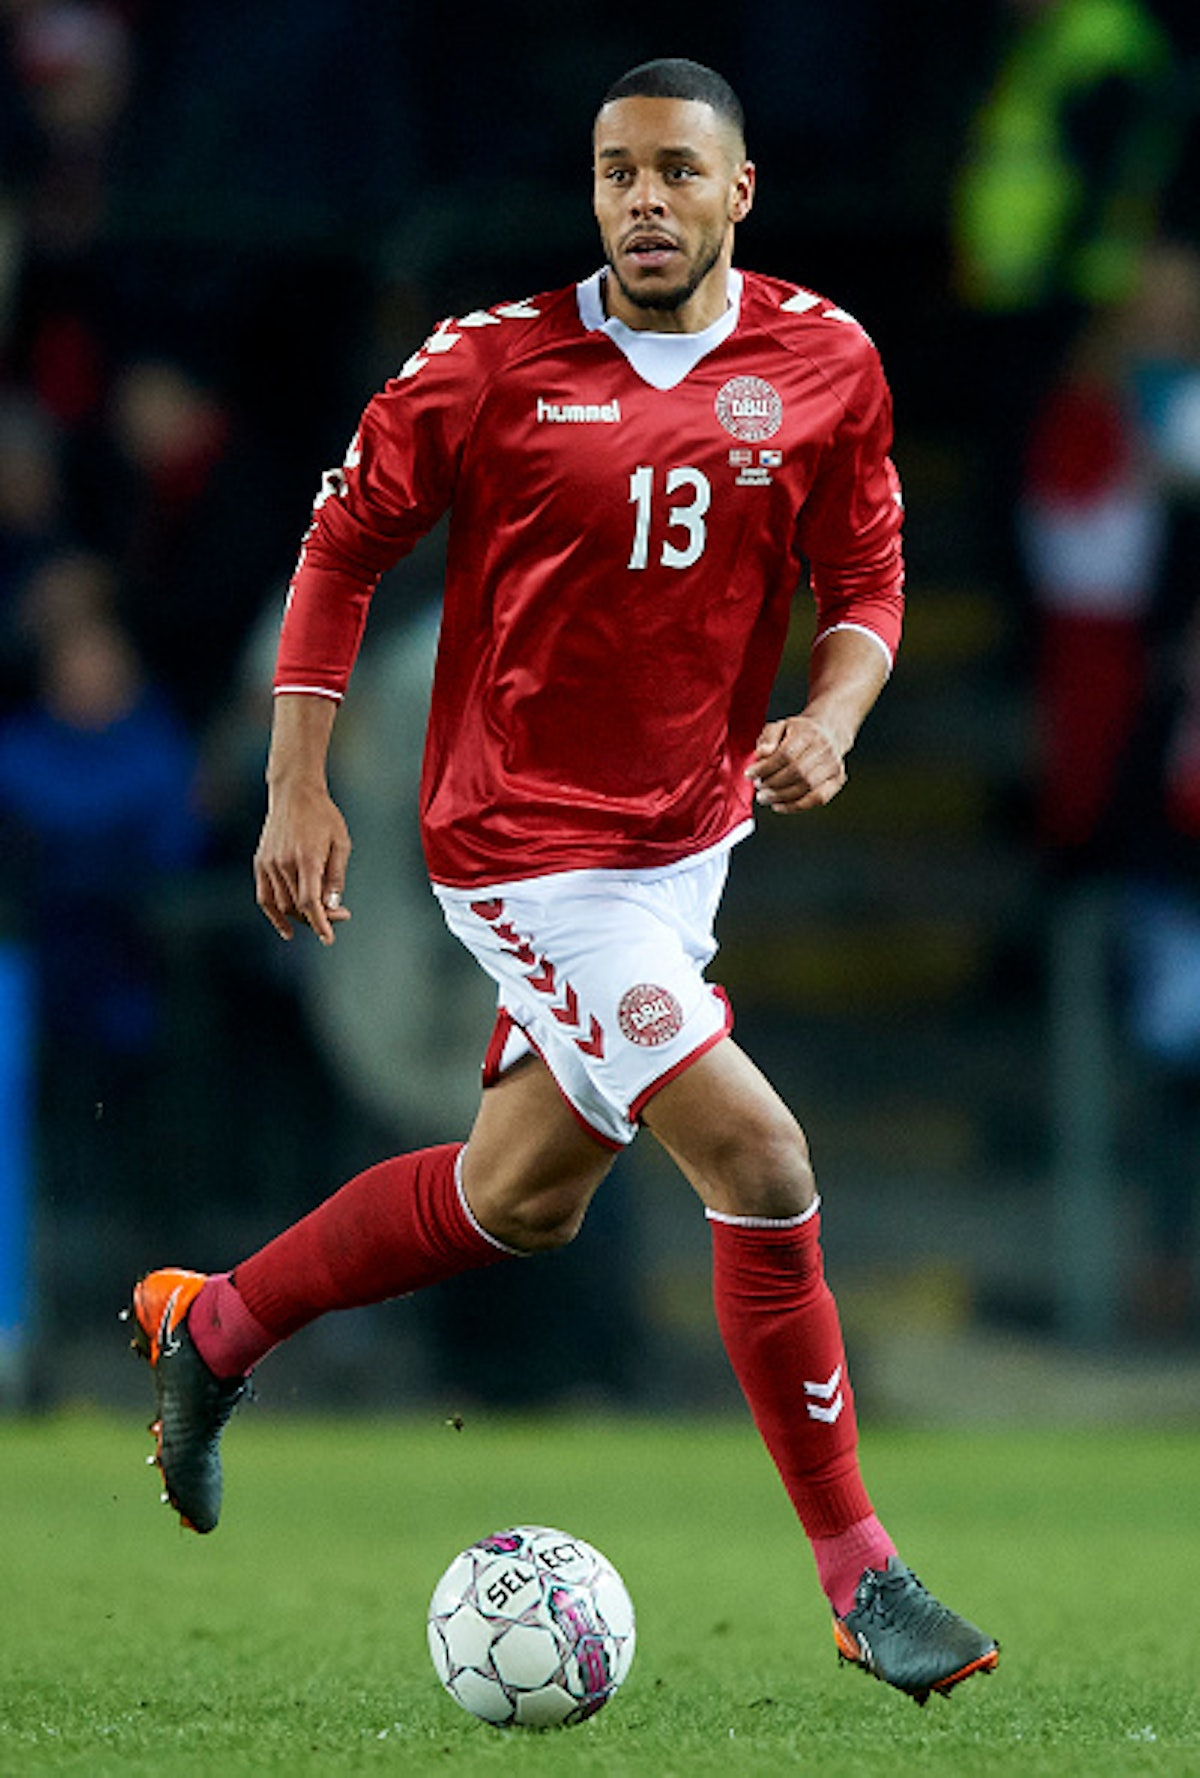 Denmark Players for World Cup 2018